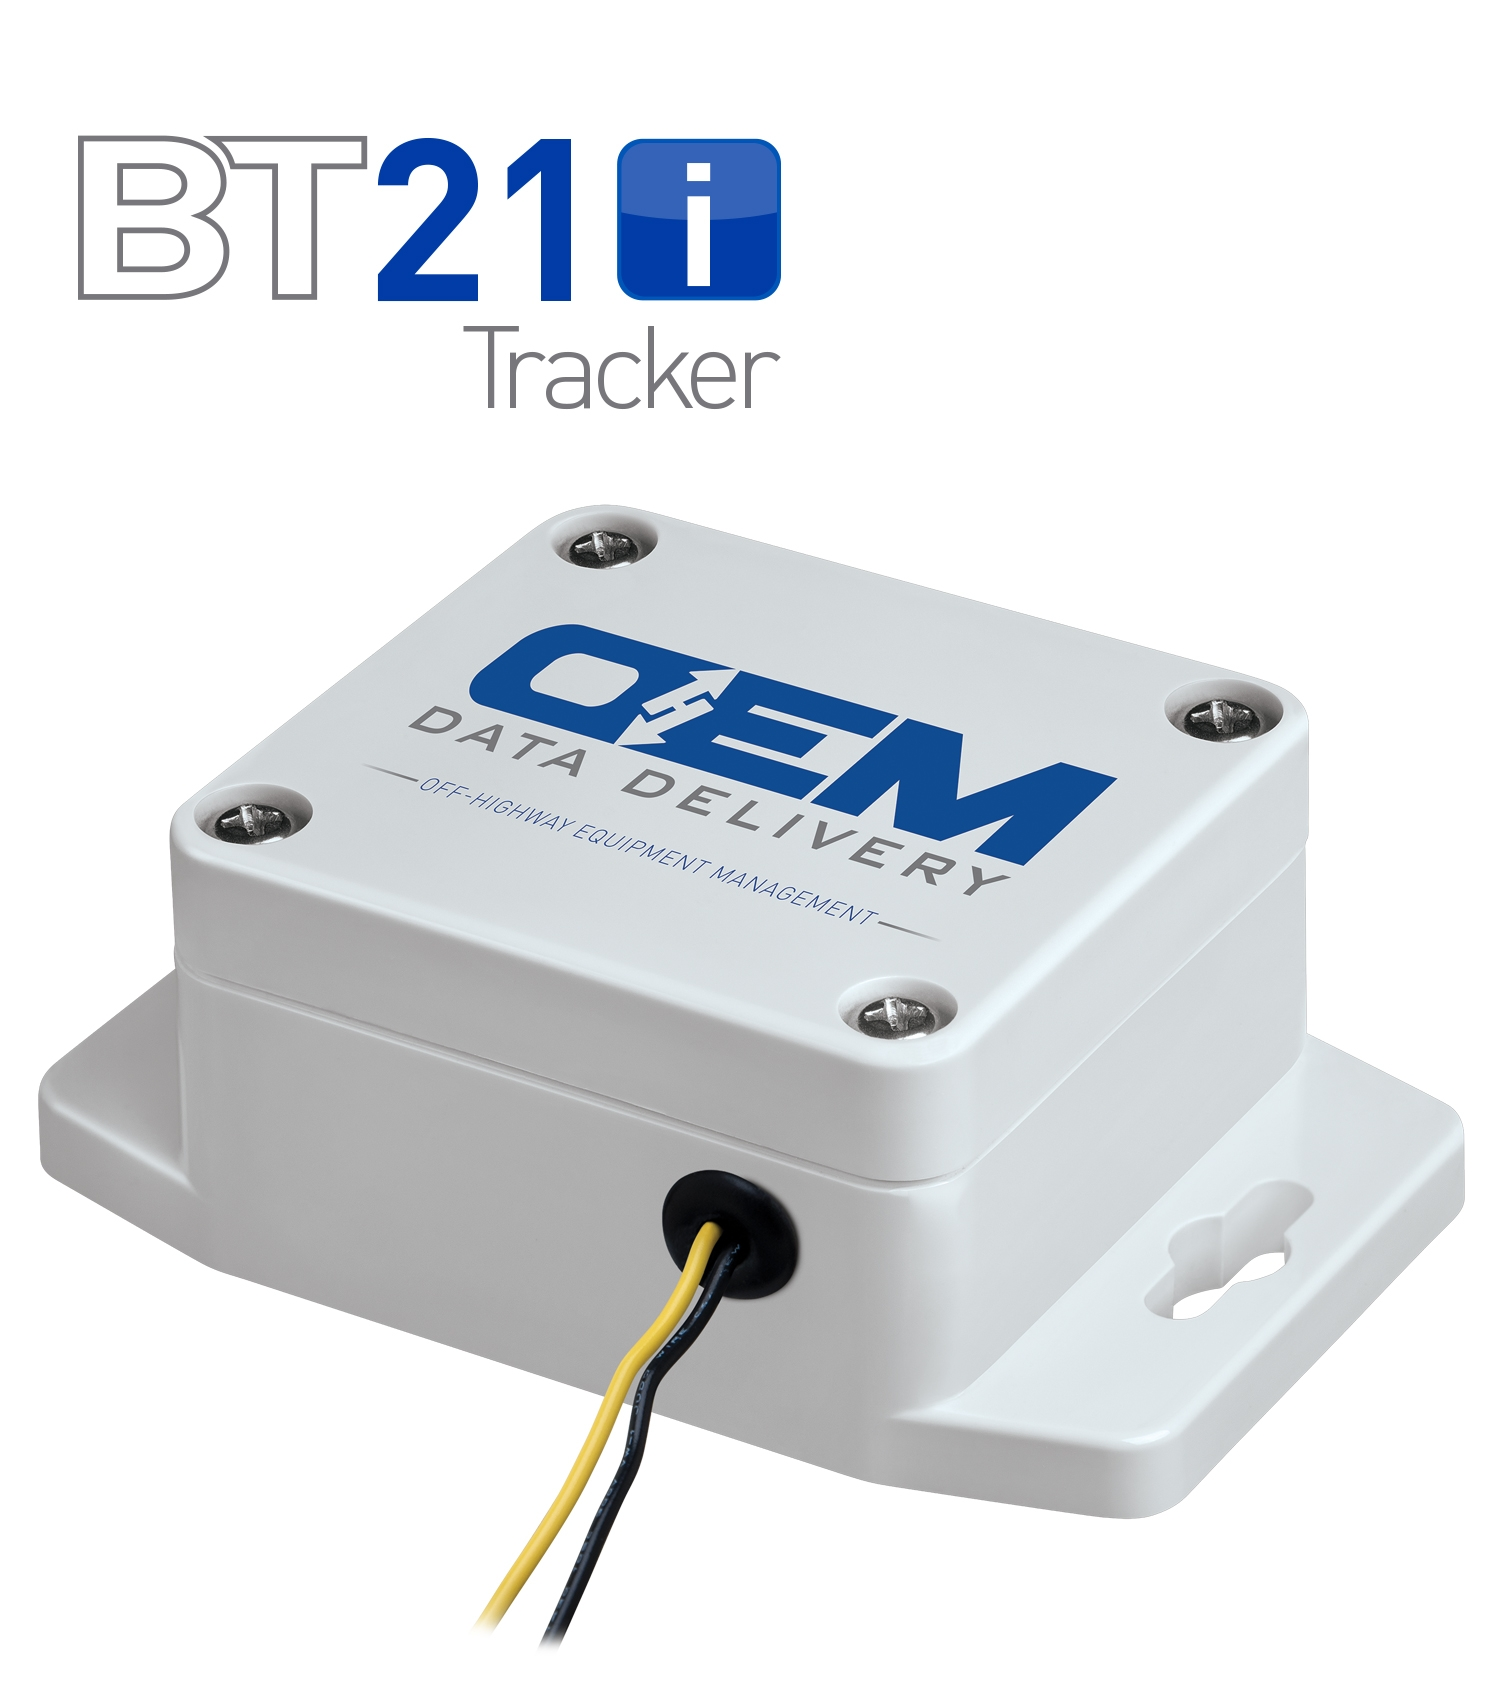 BT21i Tracker with Logo